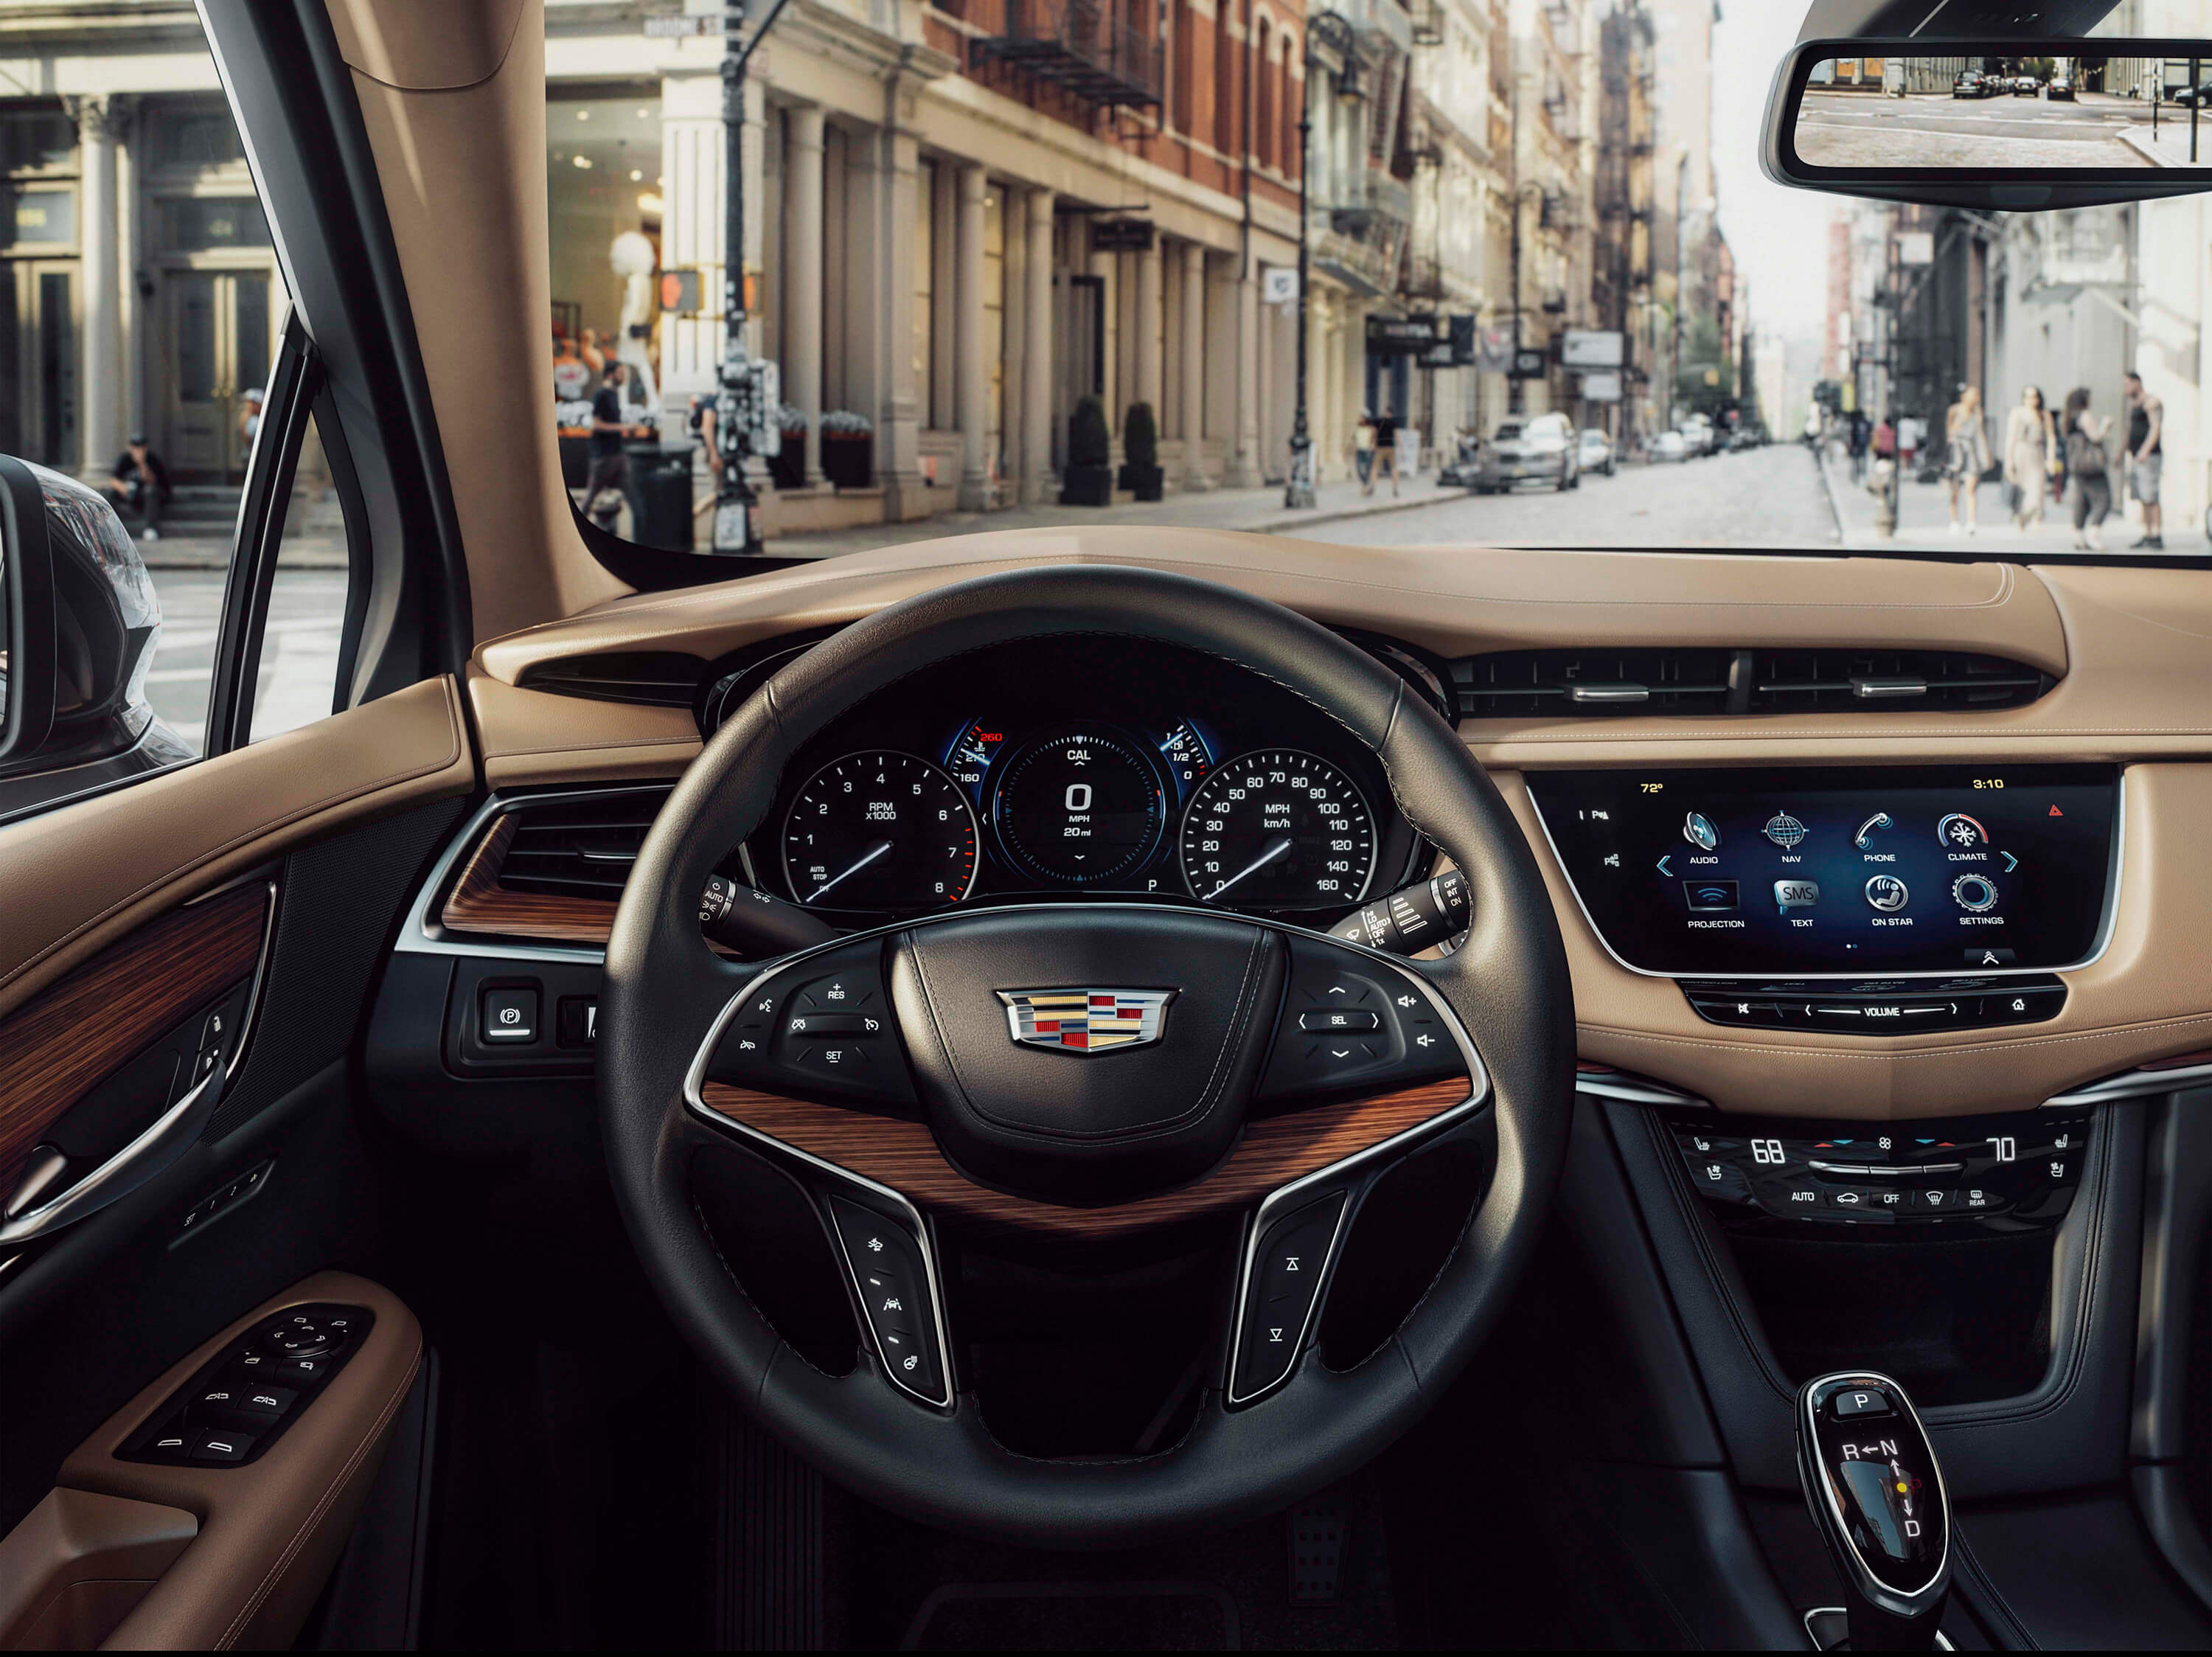 XT5 features a stunning yet simple interior.